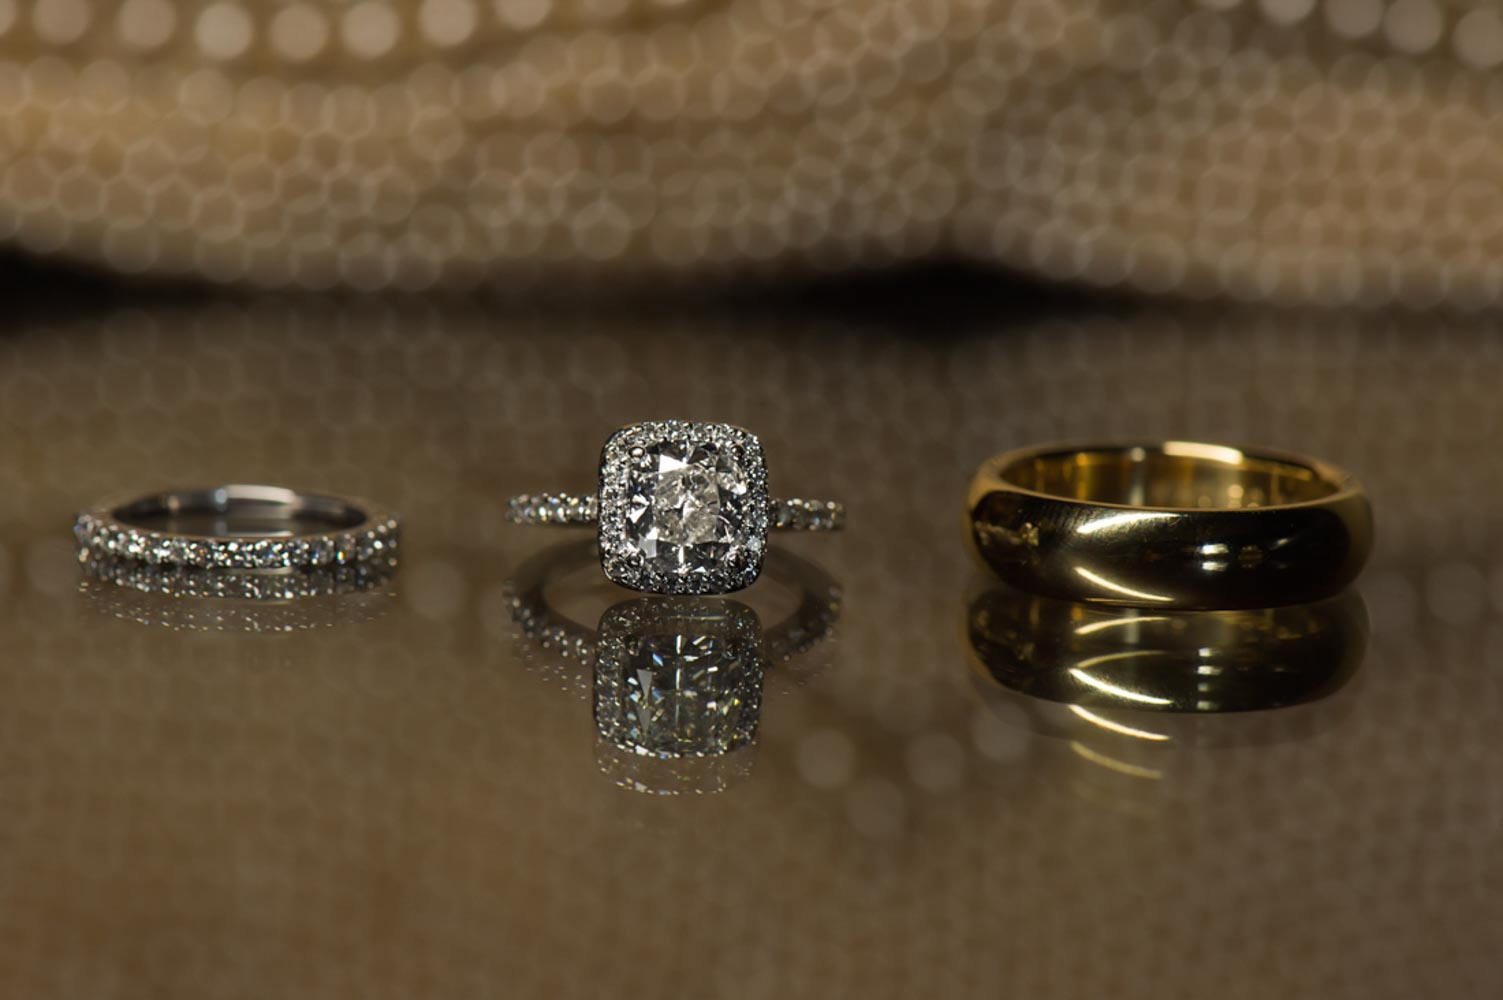 wedding rings and cushion engagement ring on table